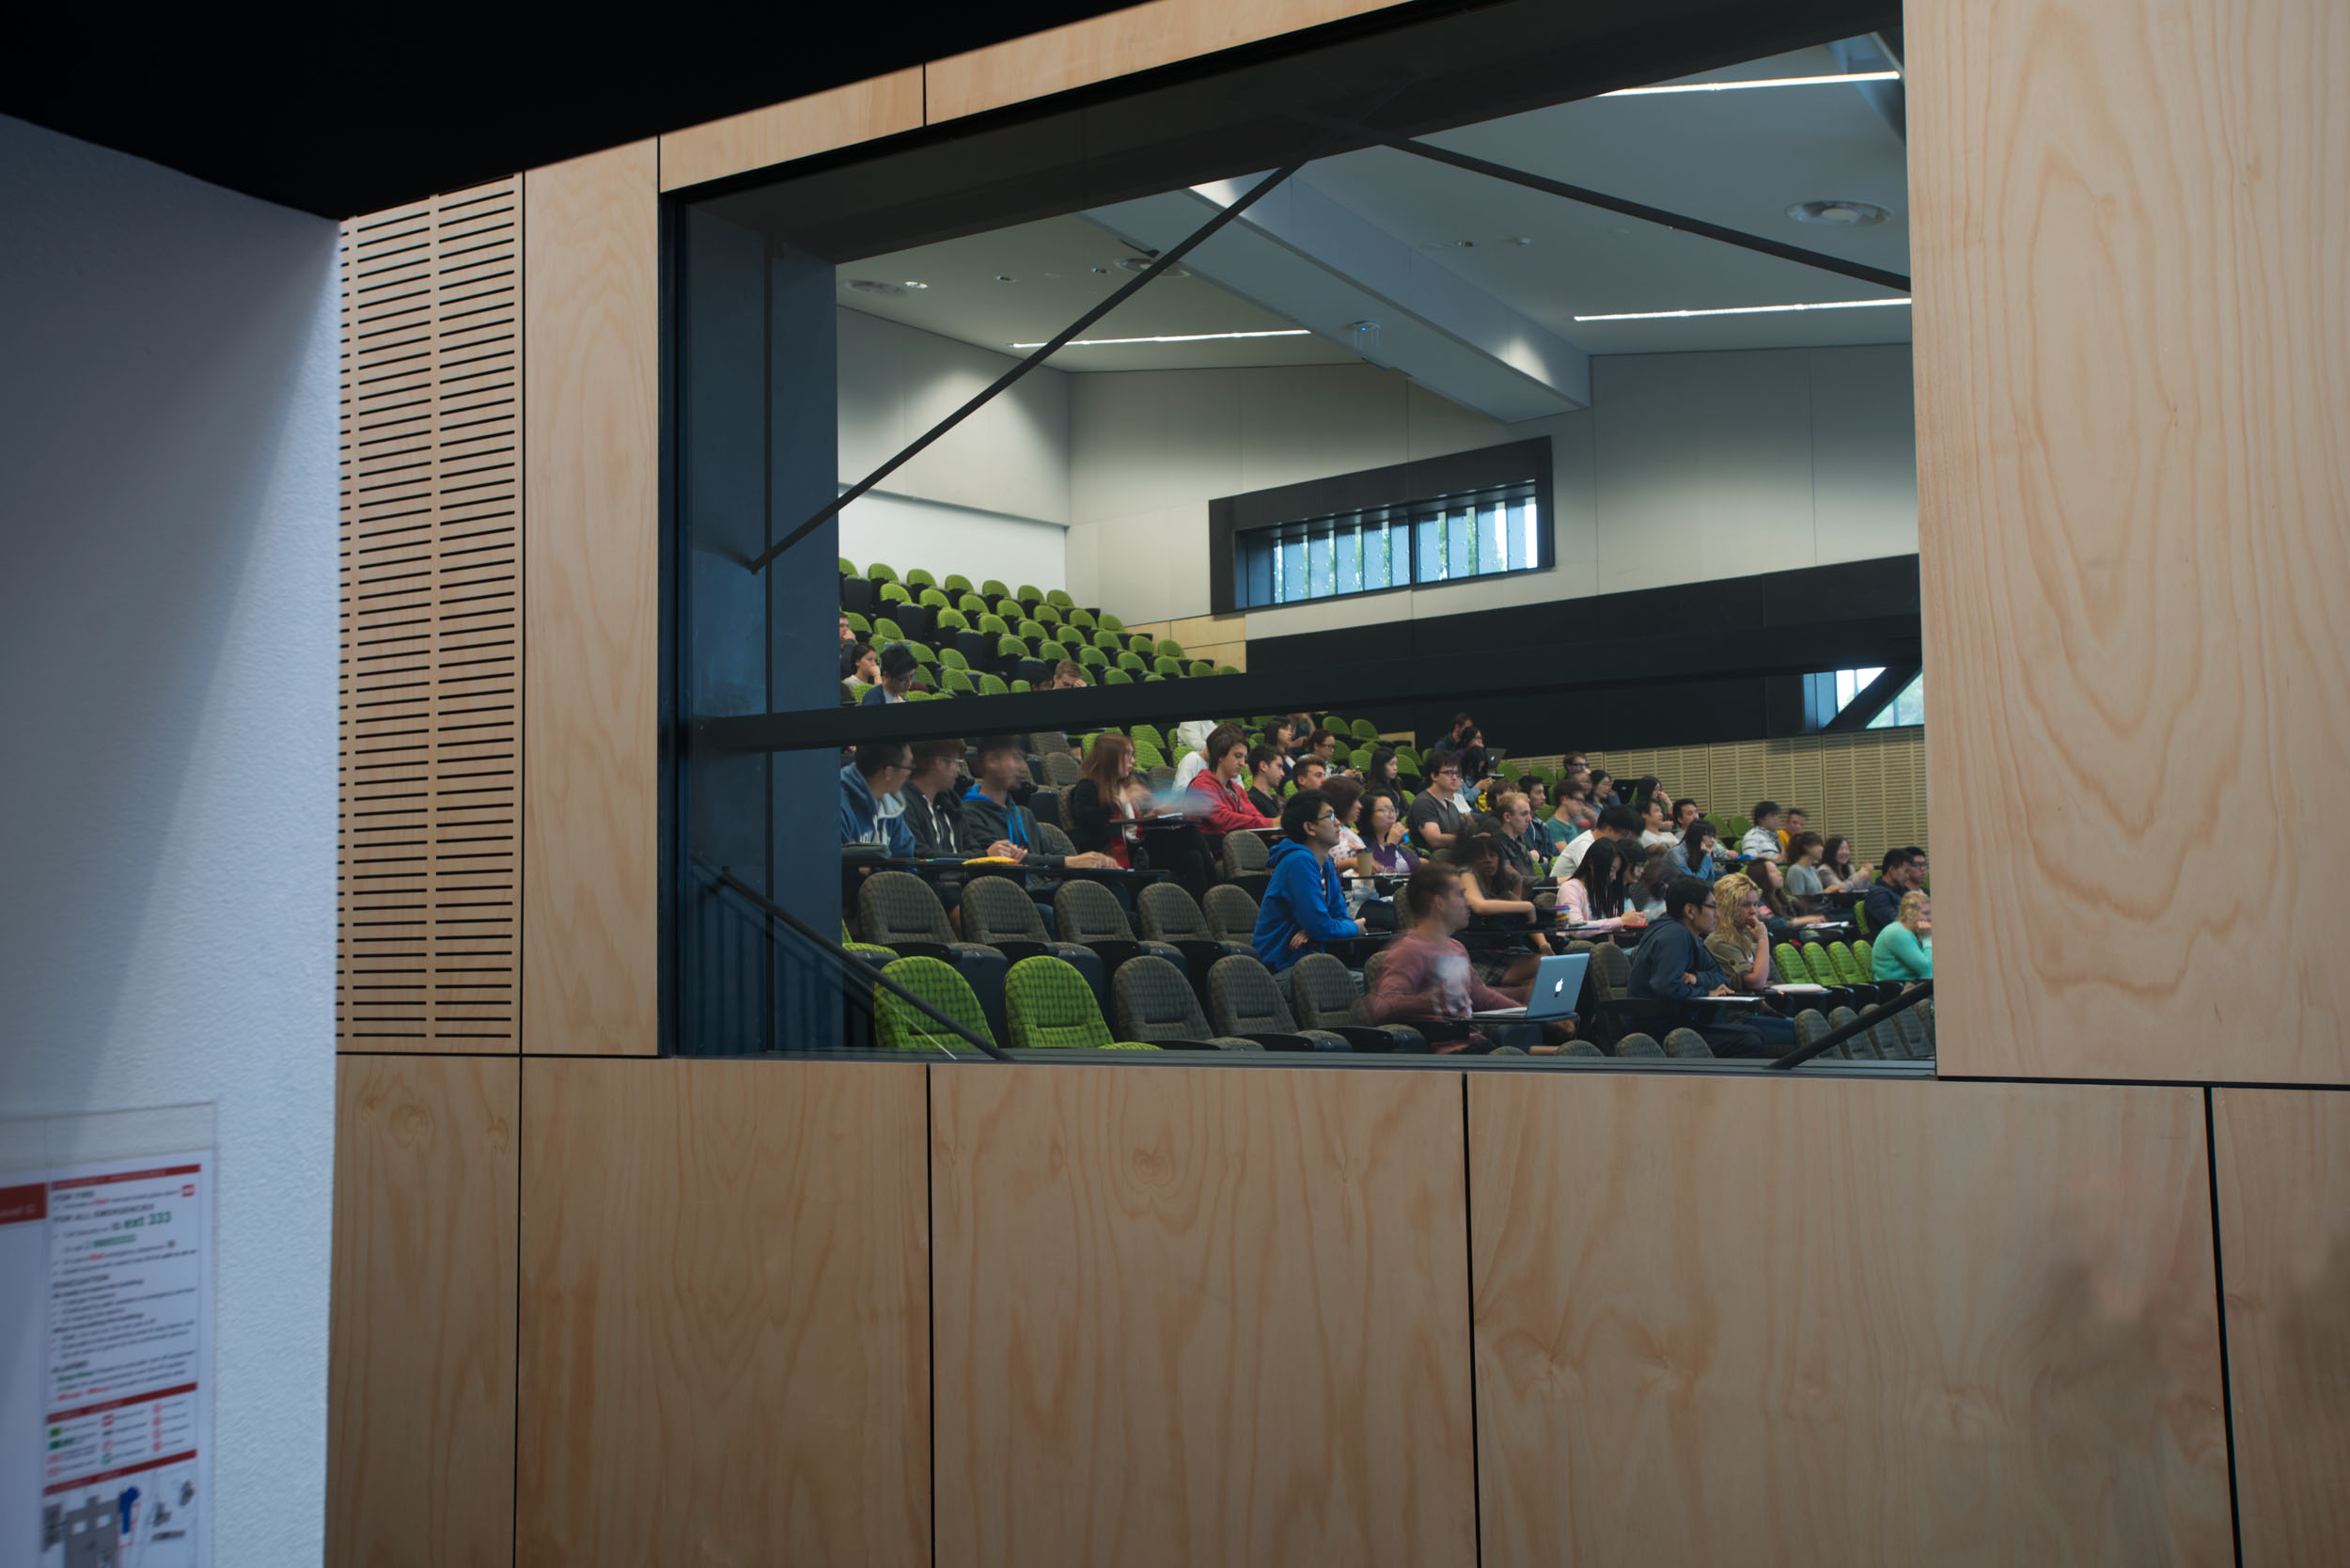 Monash S1 Lecture Theatre_Unknown_LRWeb.jpg